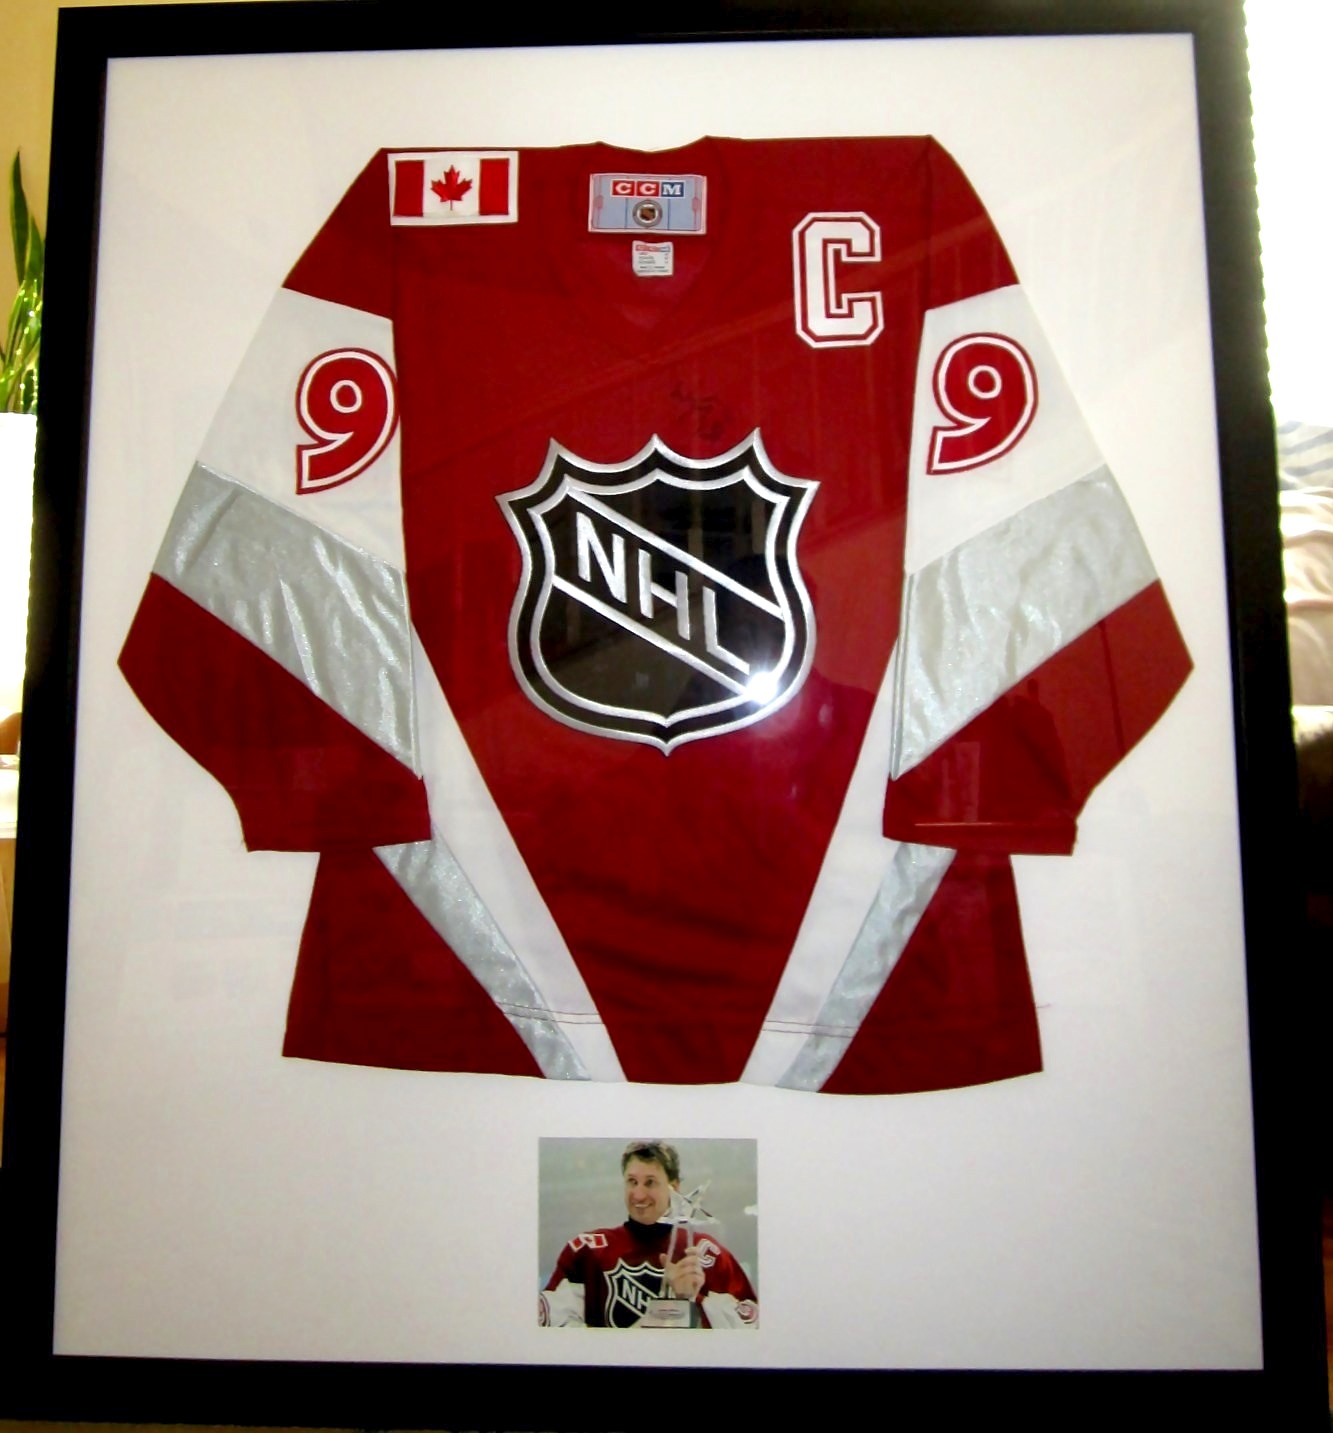 Wayne Gretzky autographed 1999 NHL All-Star Game authentic CCM jersey  matted   framed with photo 1ea3410a0ac